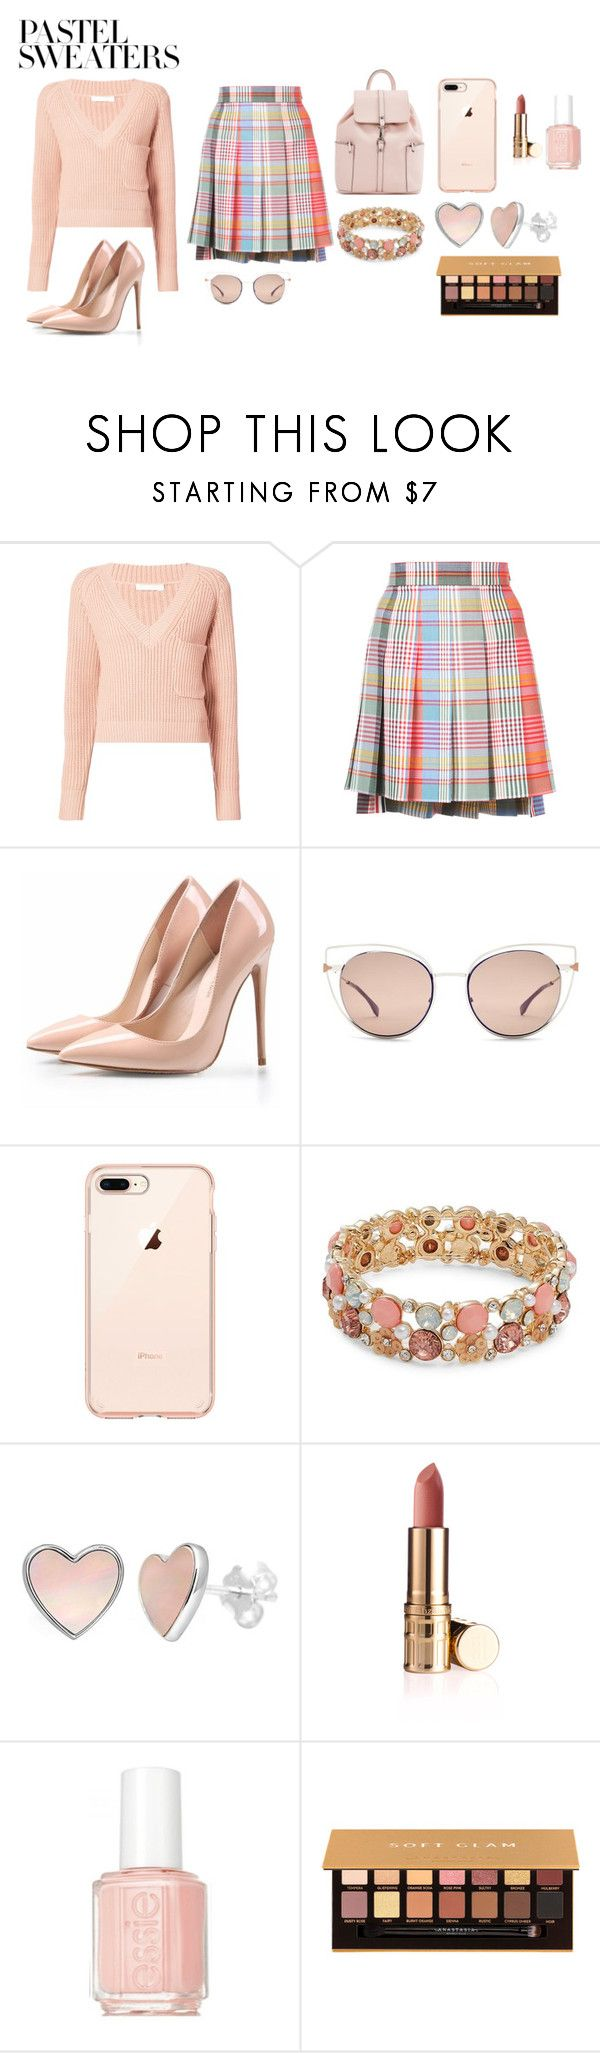 """""""pastel sweaters"""" by shannongarner ❤ liked on Polyvore featuring Chloé, Thom Browne, Fendi, Design Lab, Essie, Anastasia Beverly Hills and pastelsweaters"""